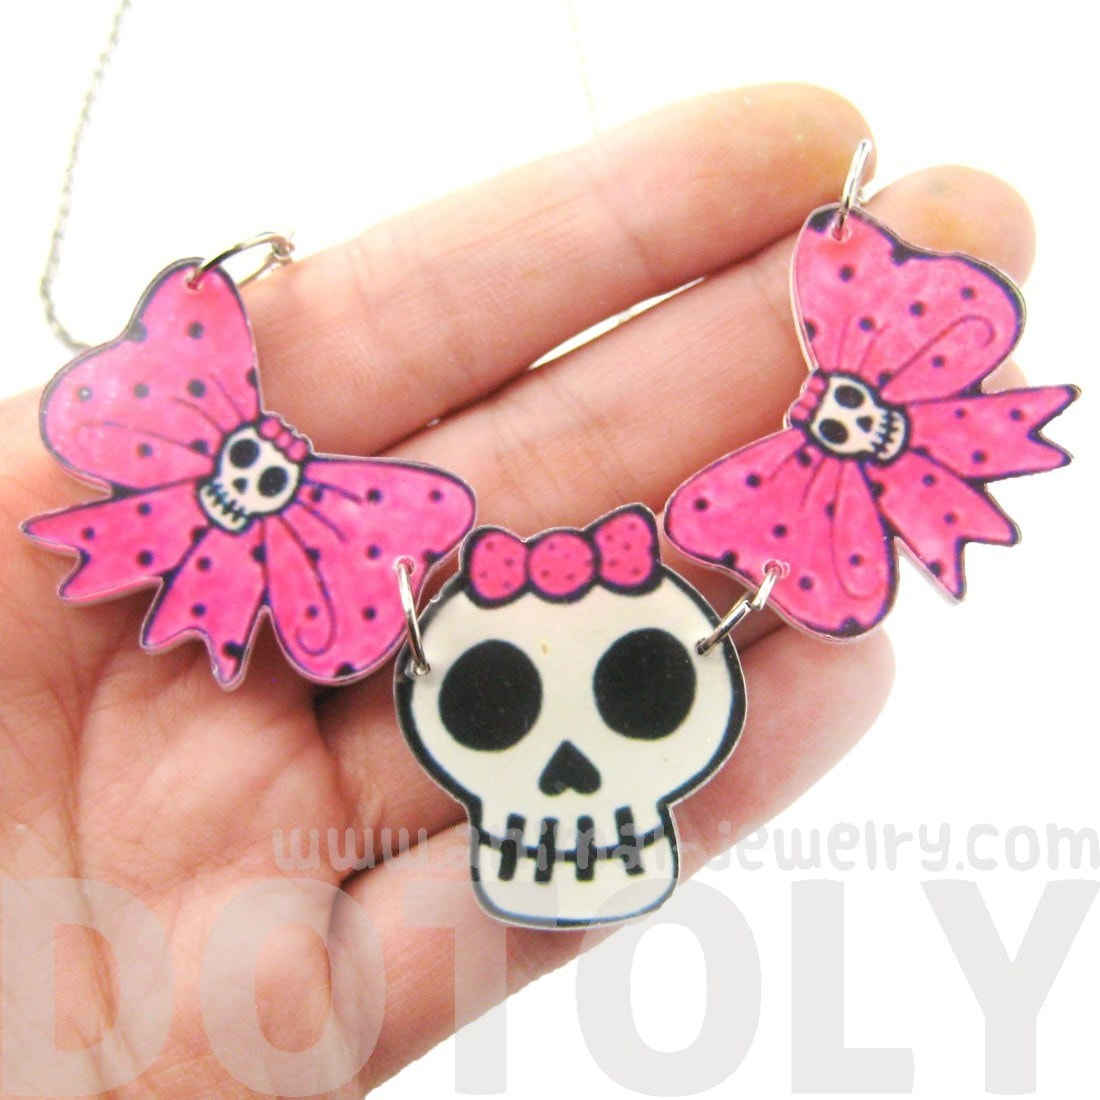 Pink Polka Dot Bow and Skeleton Skull Shaped Acrylic Pendant Necklace